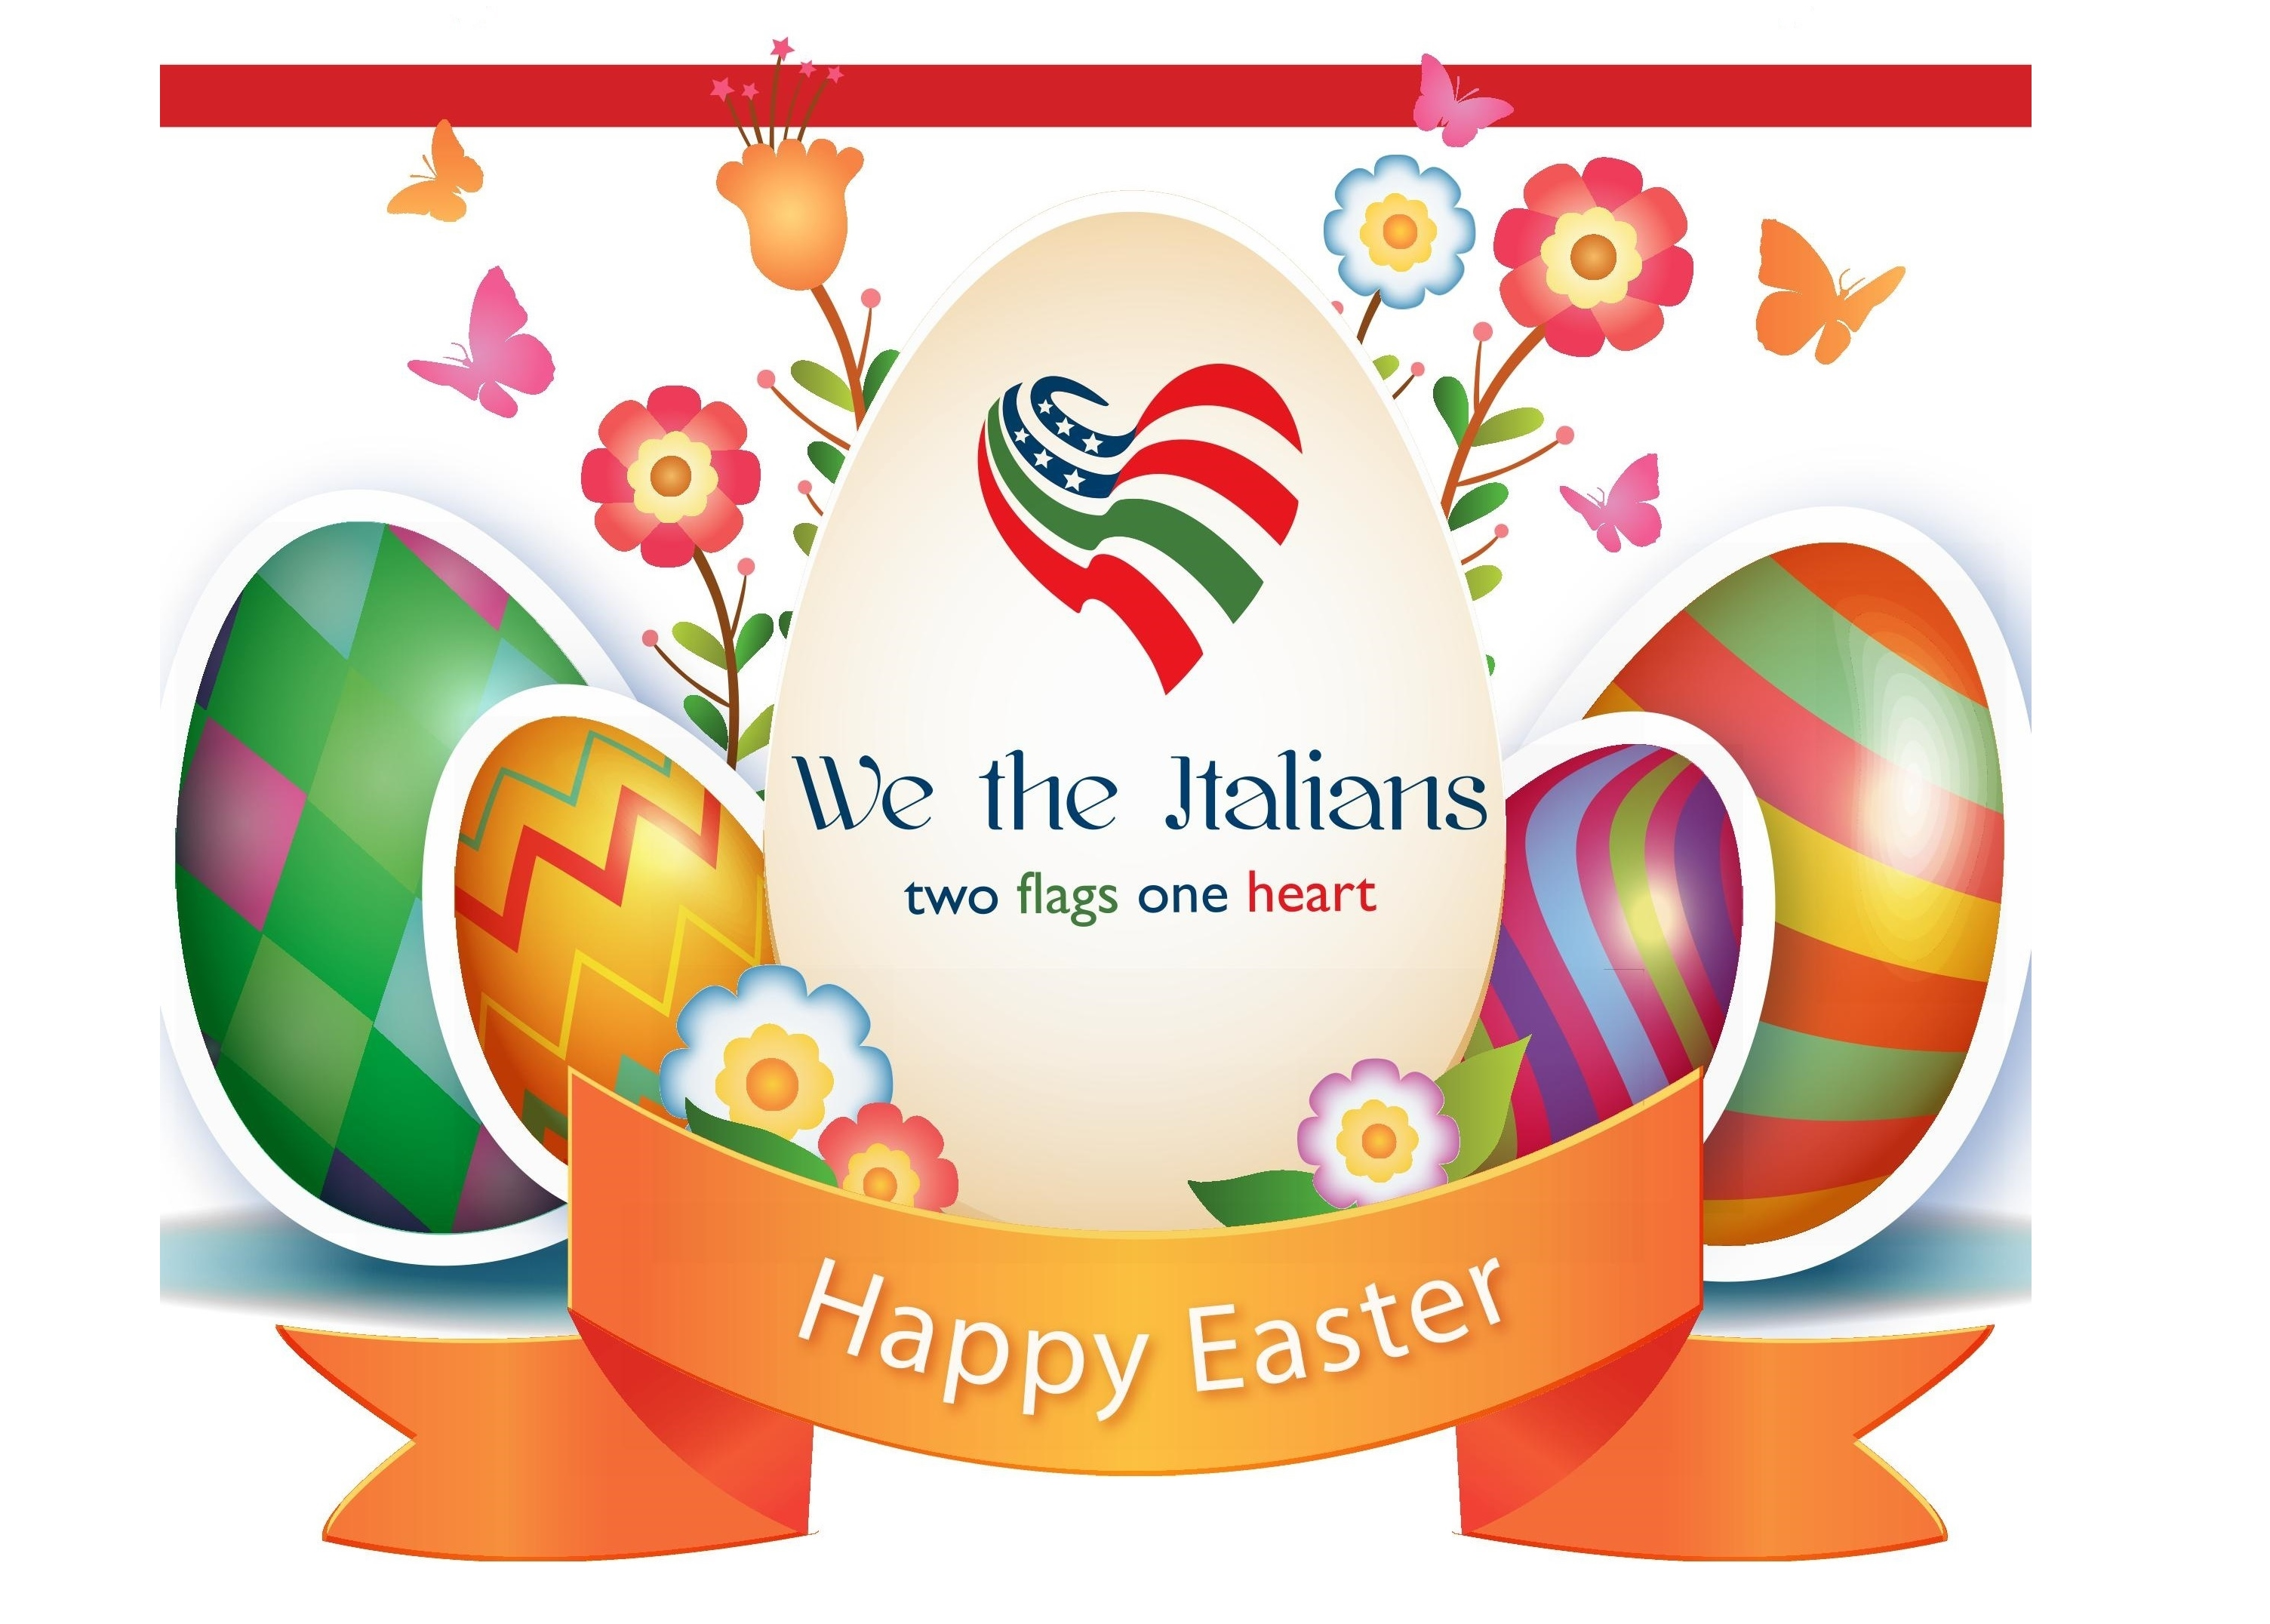 We the italians italian traditions italian traditions happy we the italians italian traditions italian traditions happy easter buona pasqua m4hsunfo